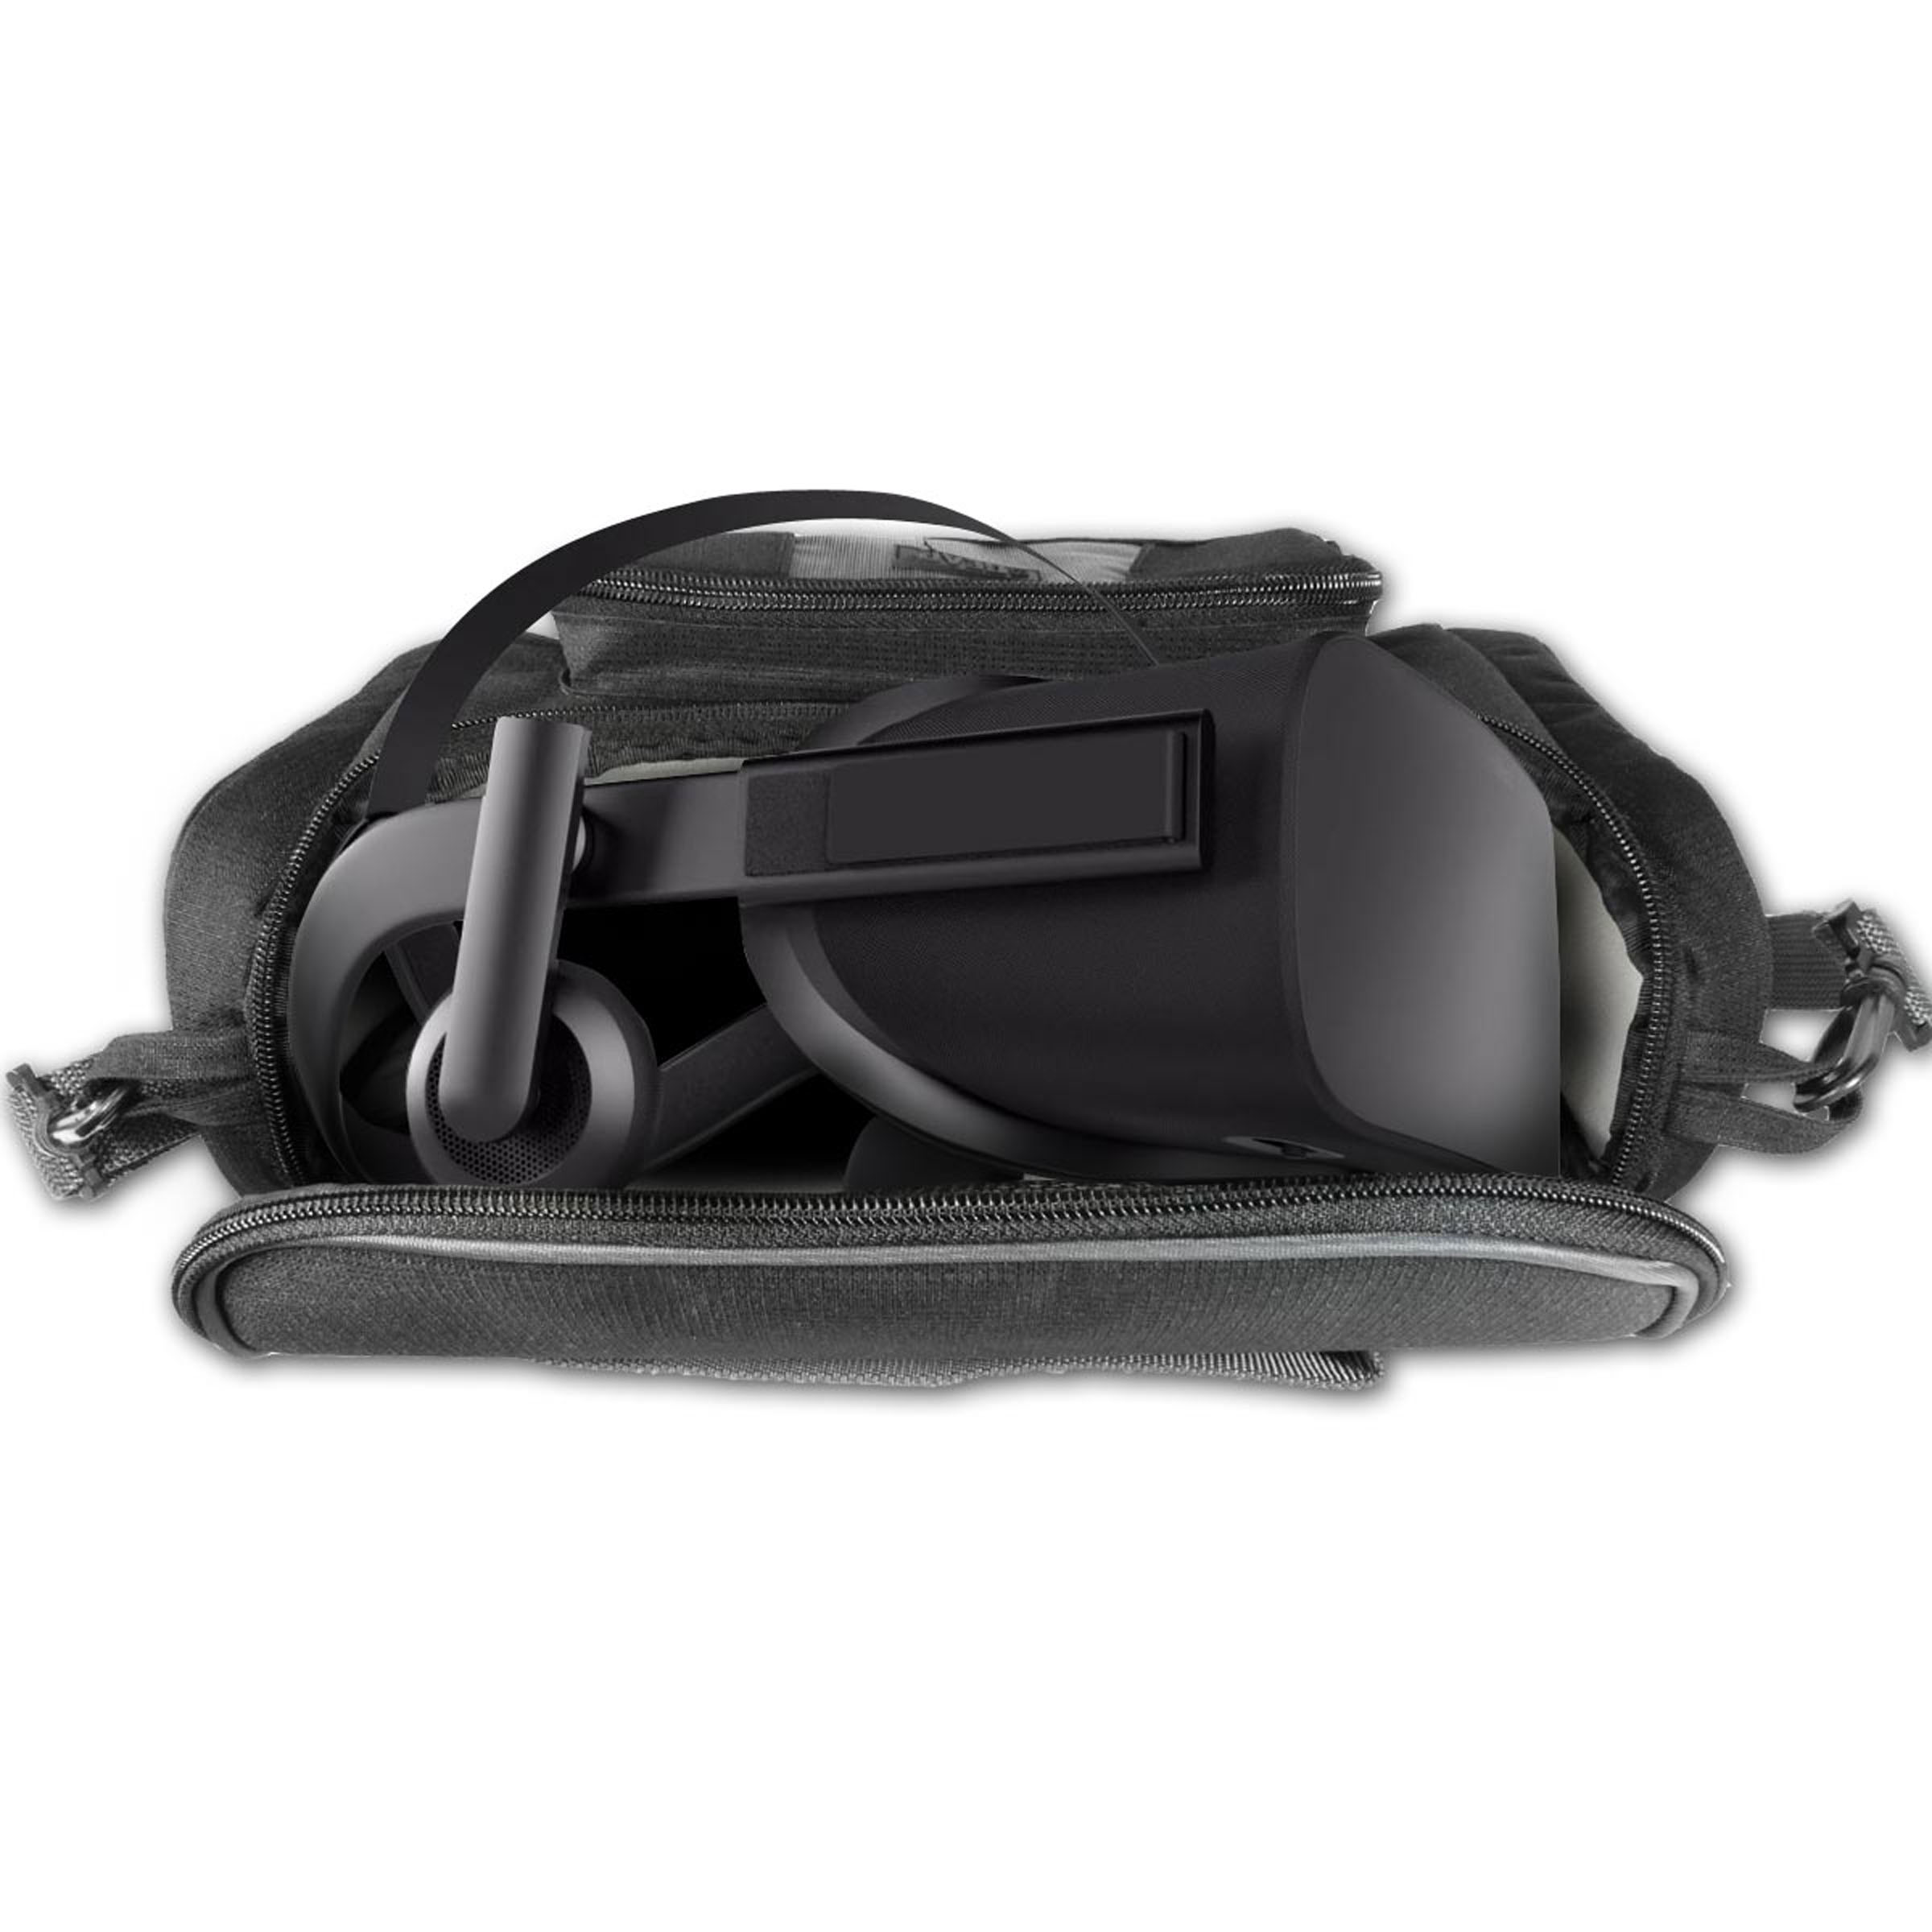 Samsung vr headset travel carrying case bonus cleaning - Alienware concealed carry ...